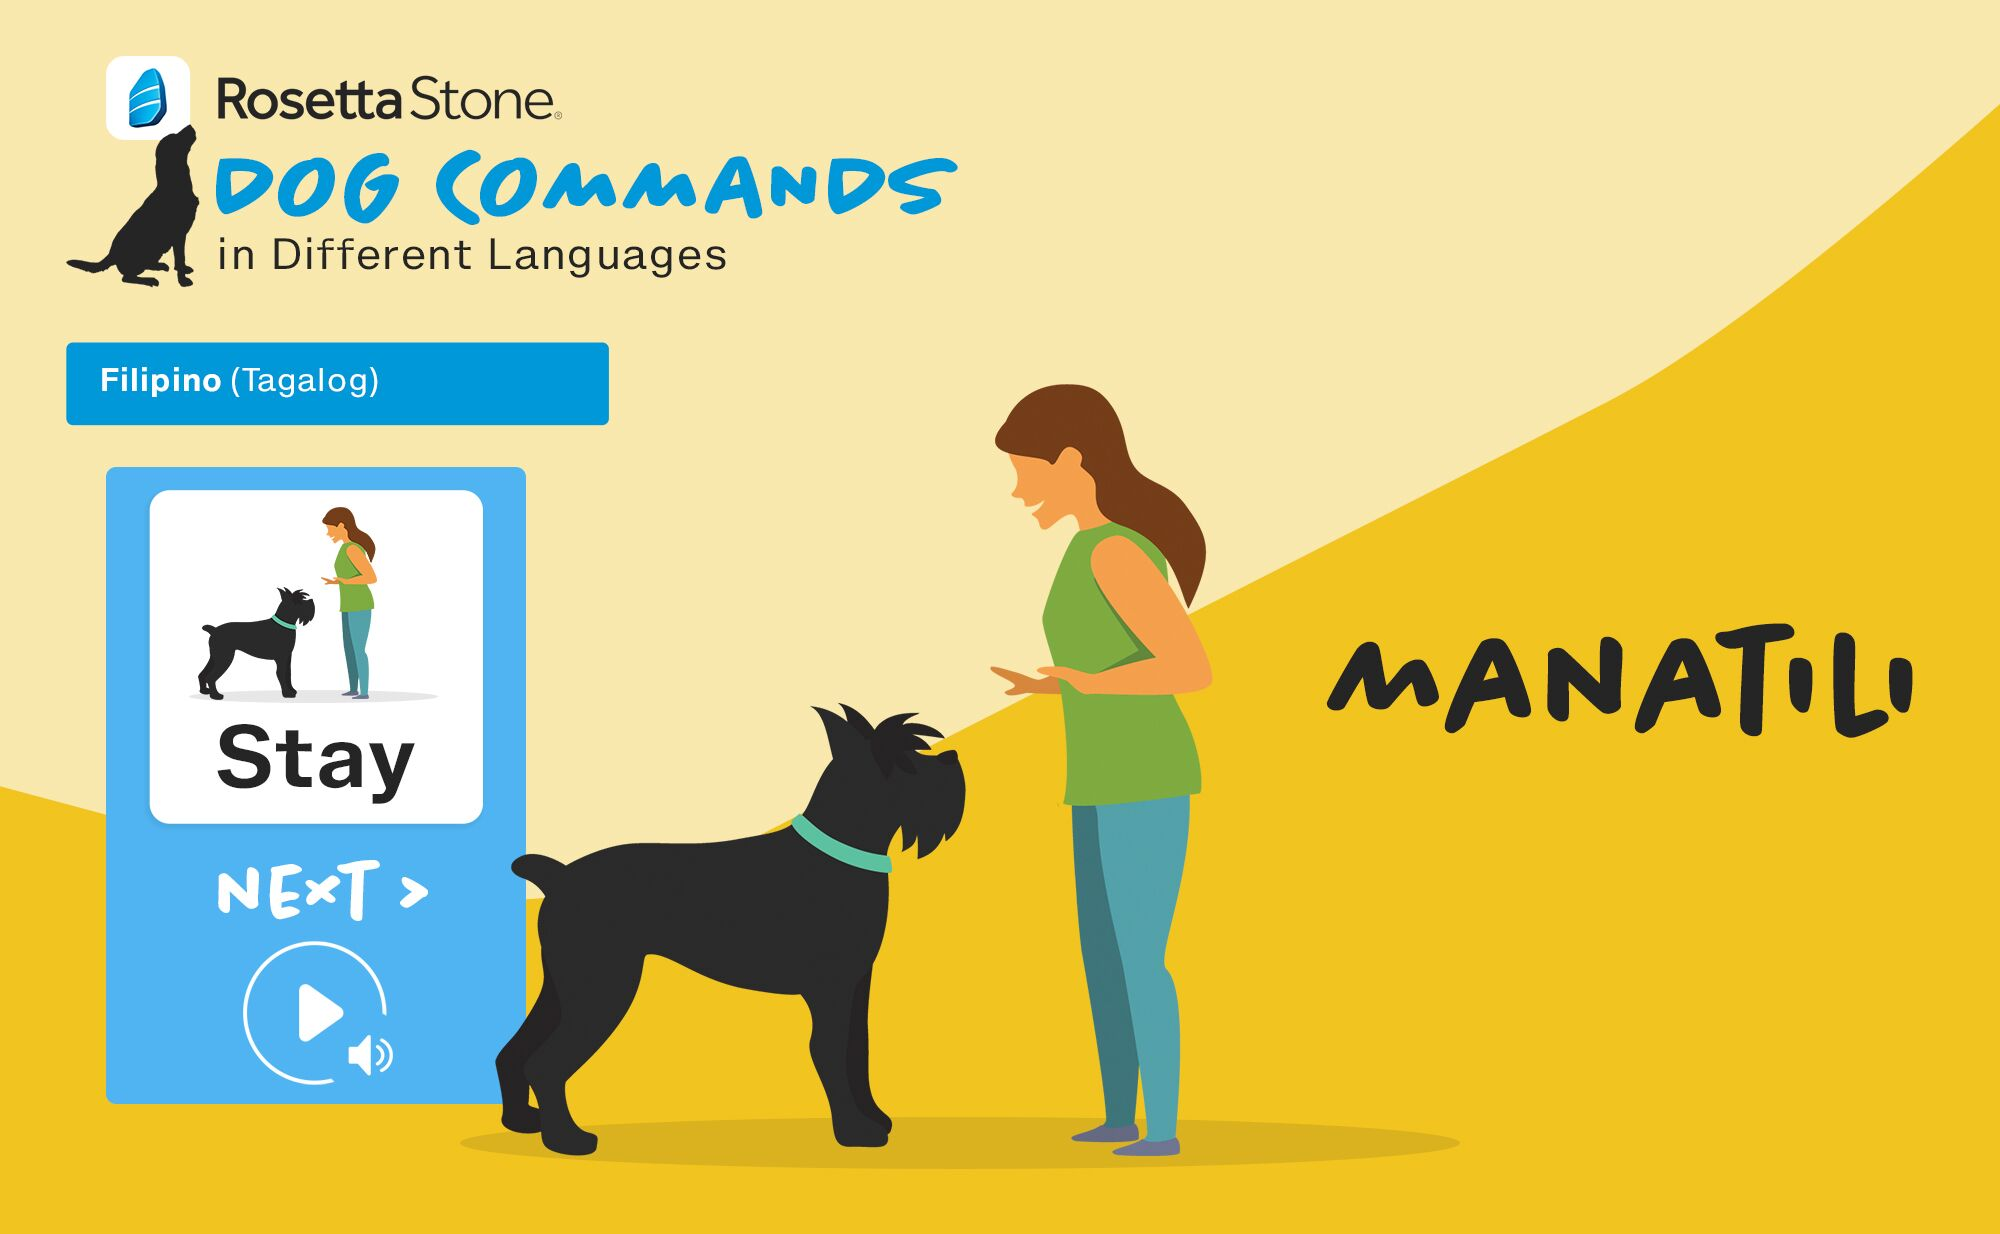 Rosetta Stone is going to the dogs for National Dog Day